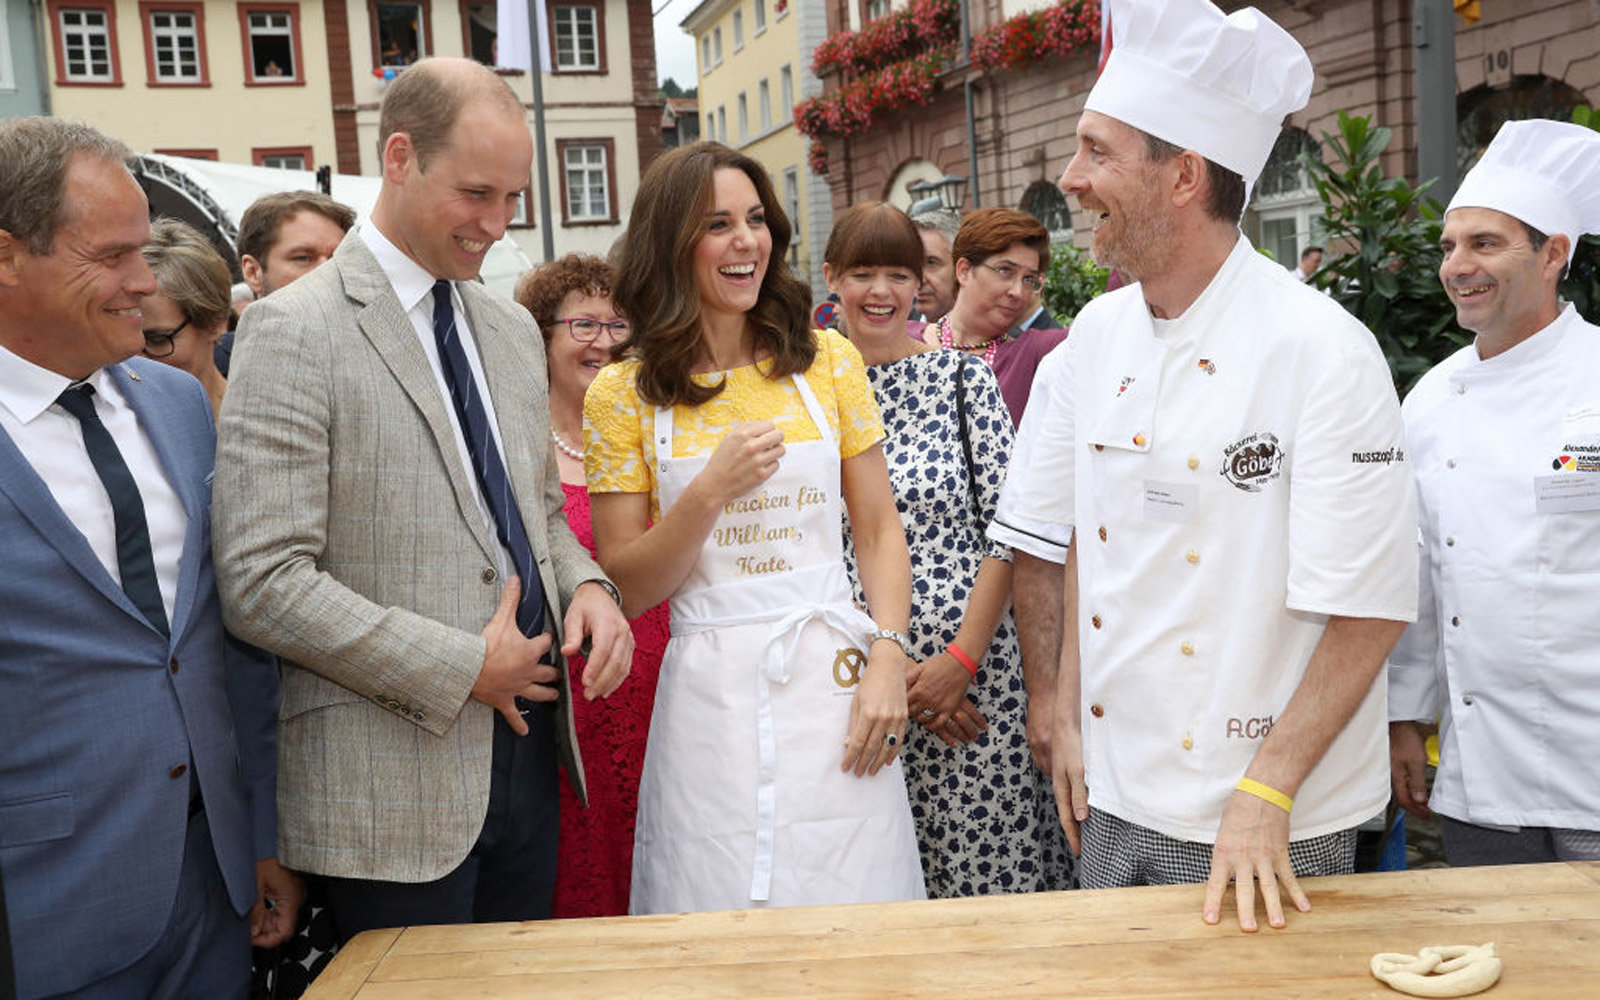 HEIDELBERG, GERMANY - JULY 20:  Prince William, Duke of Cambridge and Catherine, Duchess of Cambridge are shown how to make pretzels during a tour of a traditional German market in the Central Square on day 2 of their official visit to Germany on July 20,